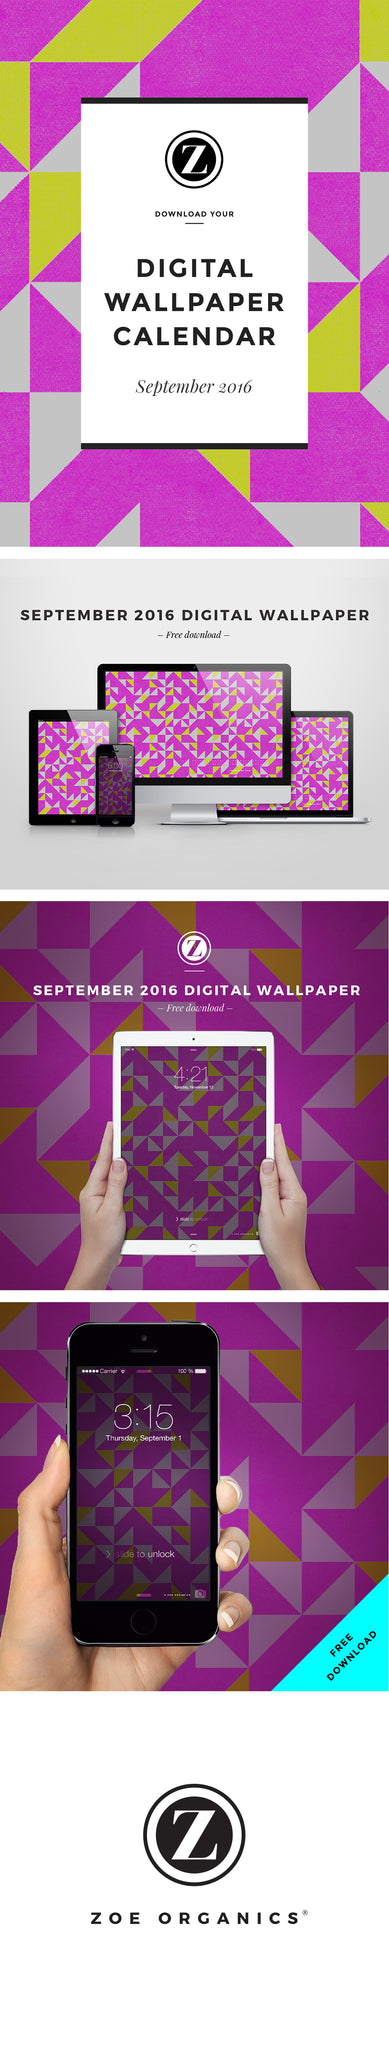 Zoe Organics Digital Wallpaper  |  Free Download  |  September 2016